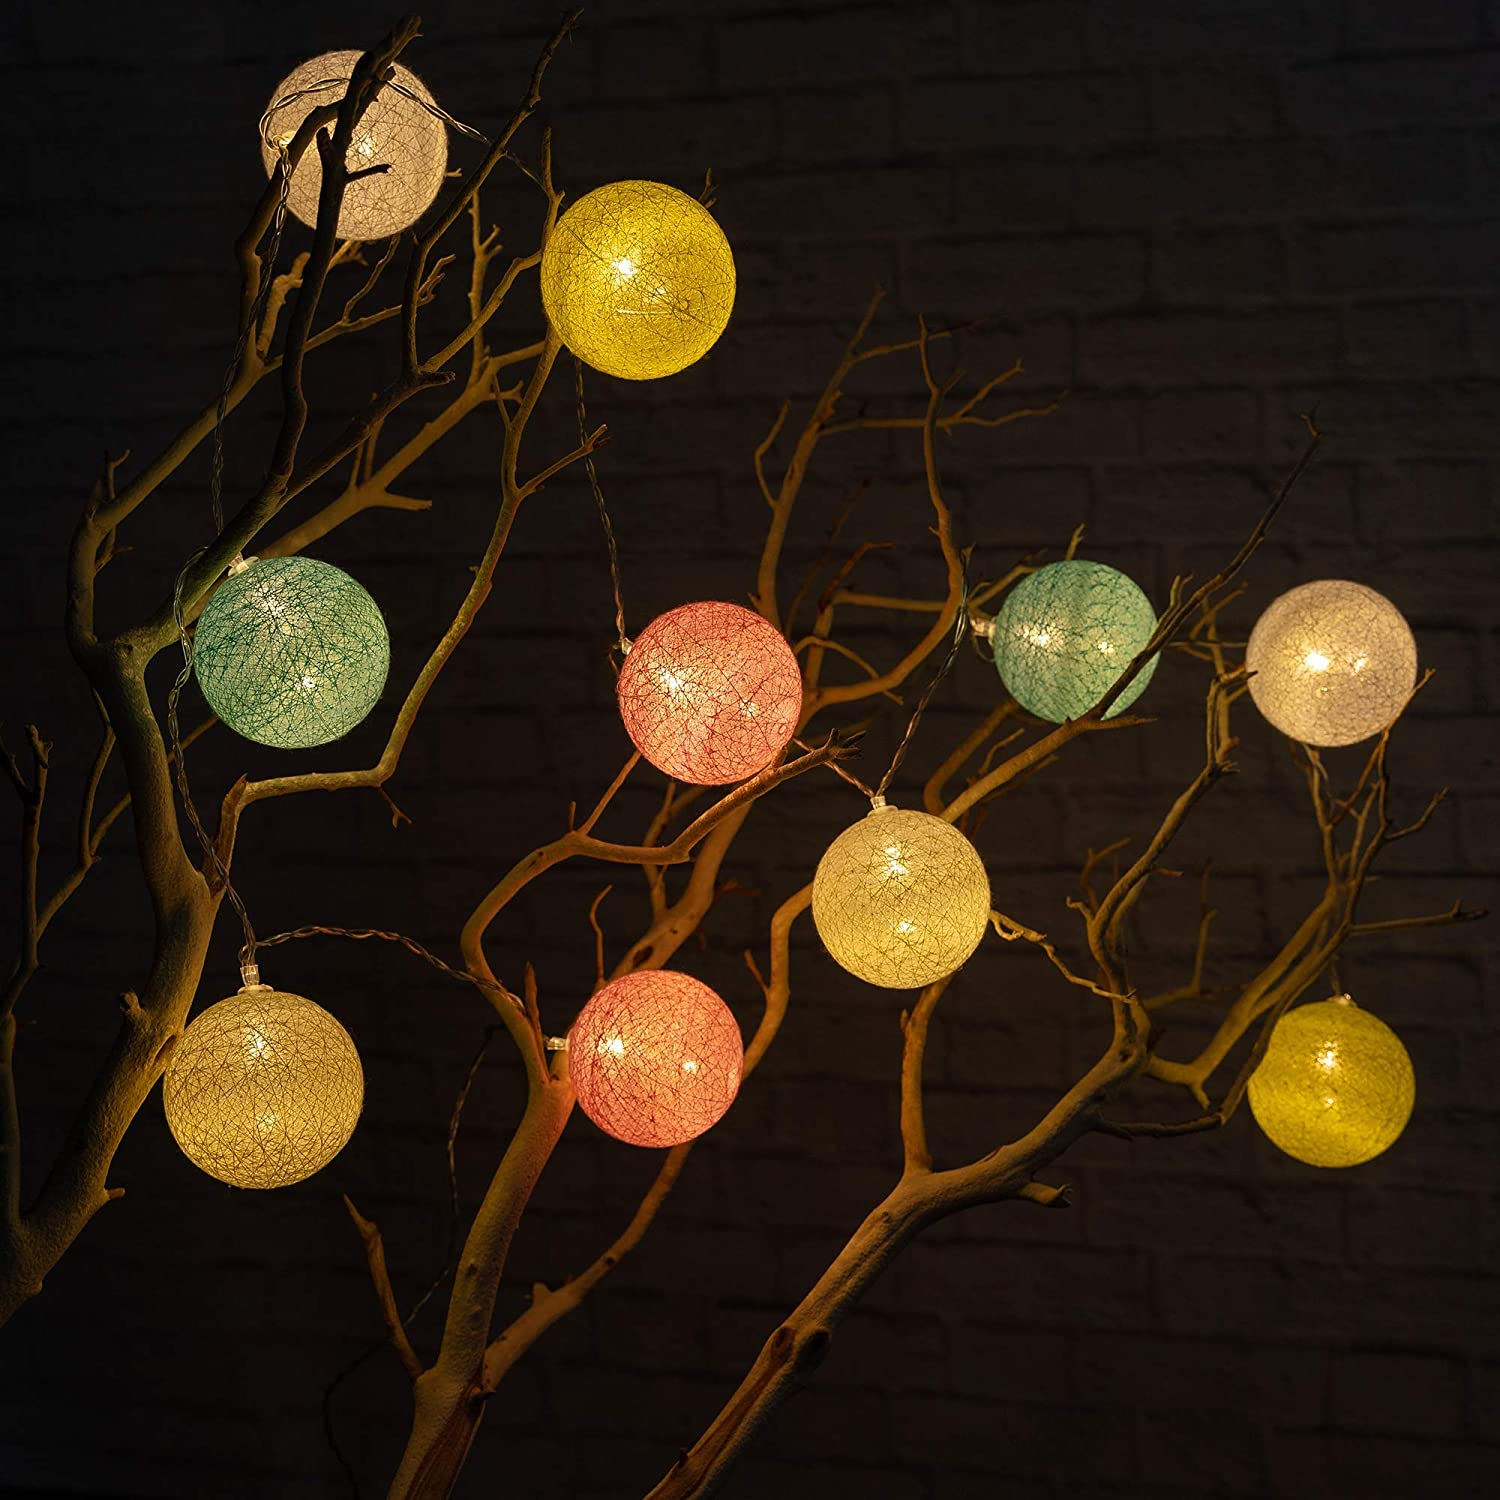 Warm White West Ivory 5.75 feet 10 LED Colorful Globe Balls String Fairy Light Battery Powered Decorative Indoor Outdoor